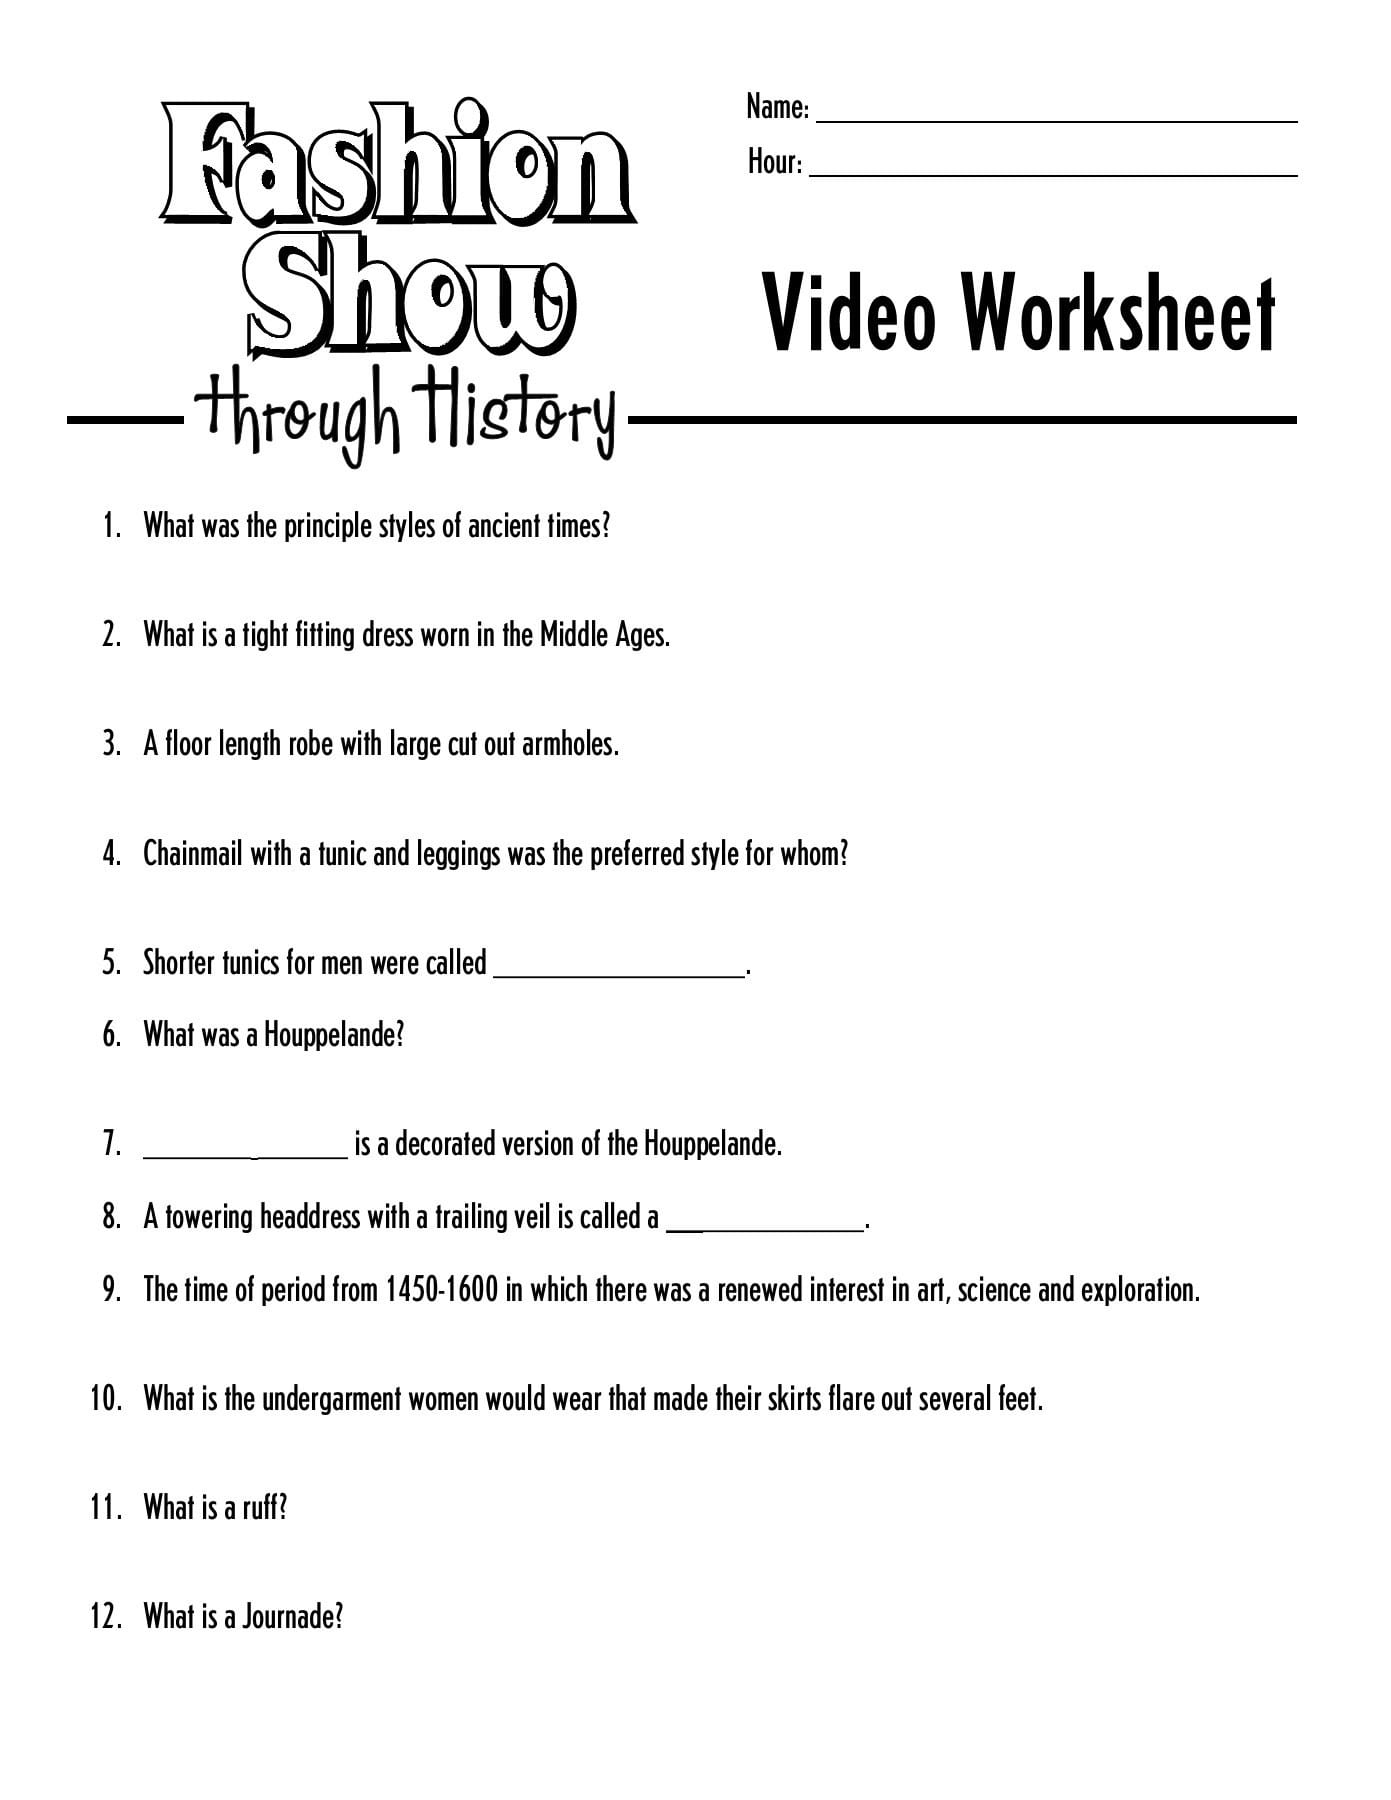 Name Hour Video Worksheet Learning Zonexpress